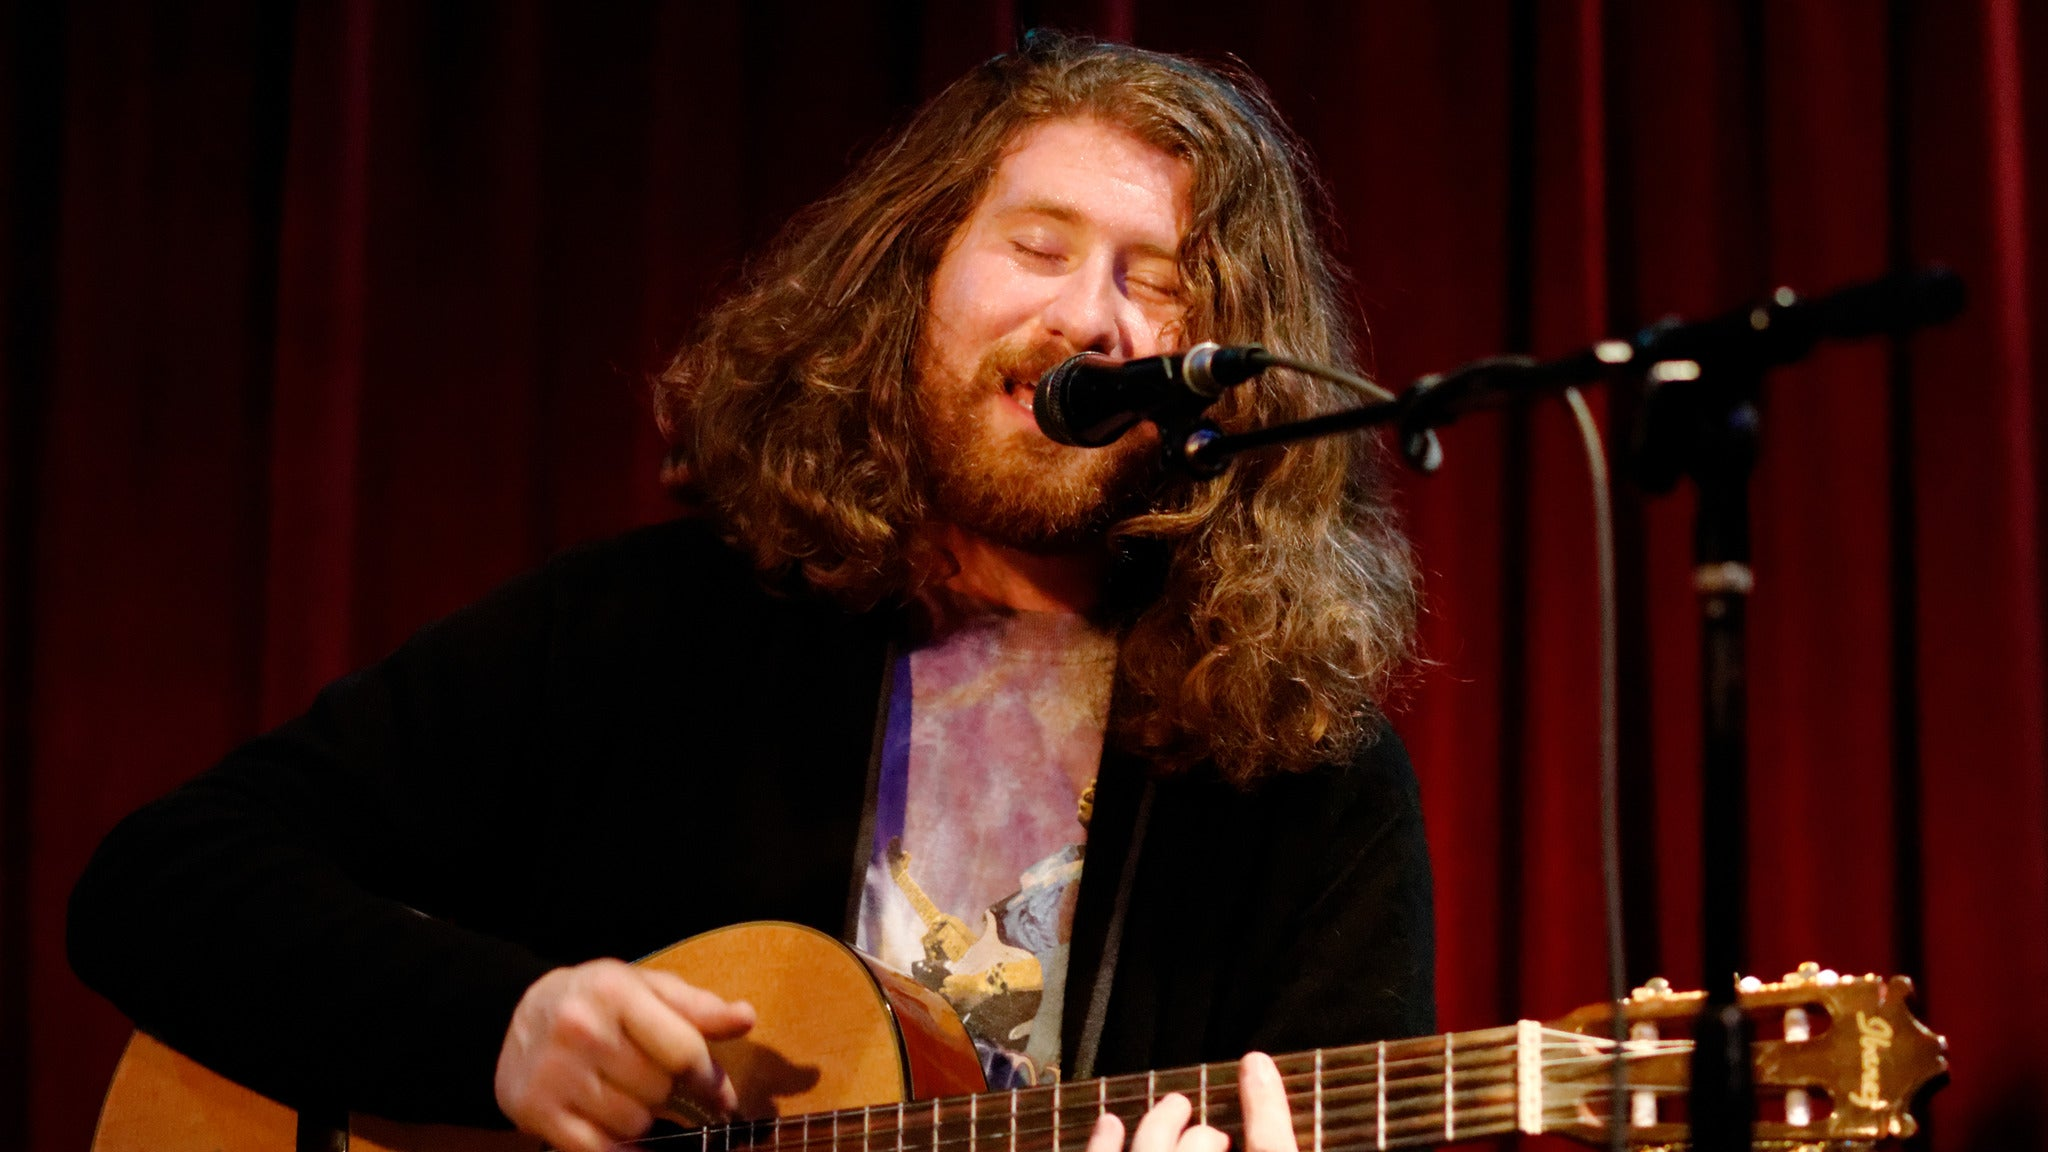 Casey Abrams, Nick Shattuck at Saint Rocke